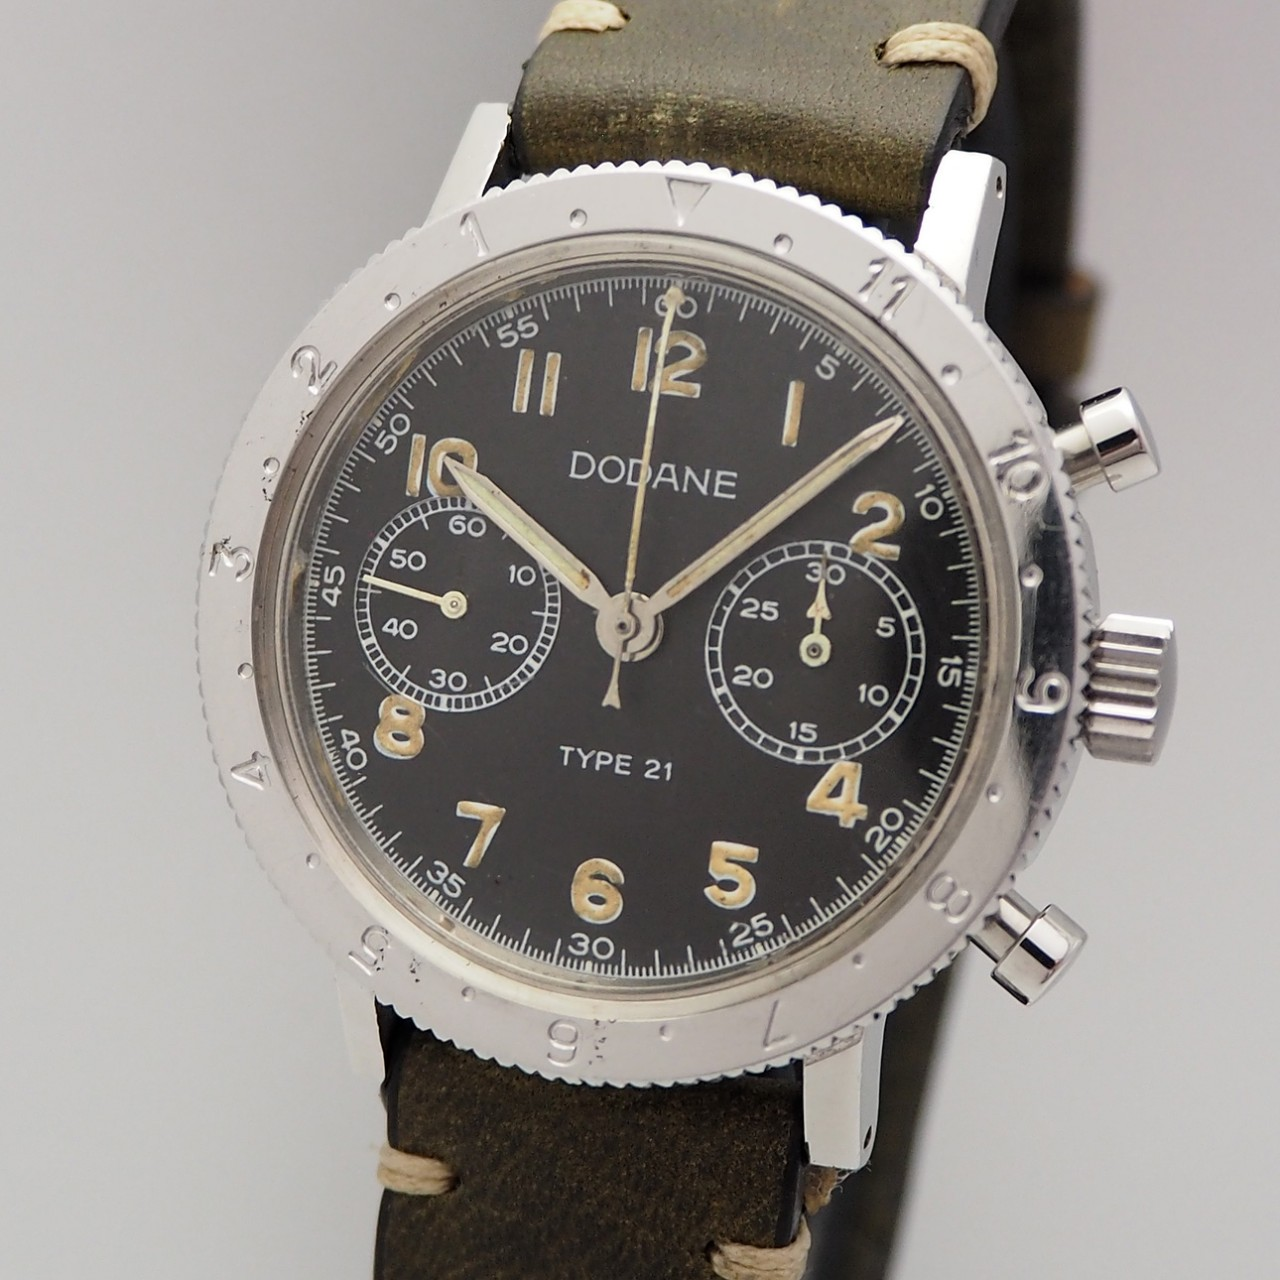 Dodane Military Vintage Chronograph Type 21 / Valjoux 235 Flyback, serviced